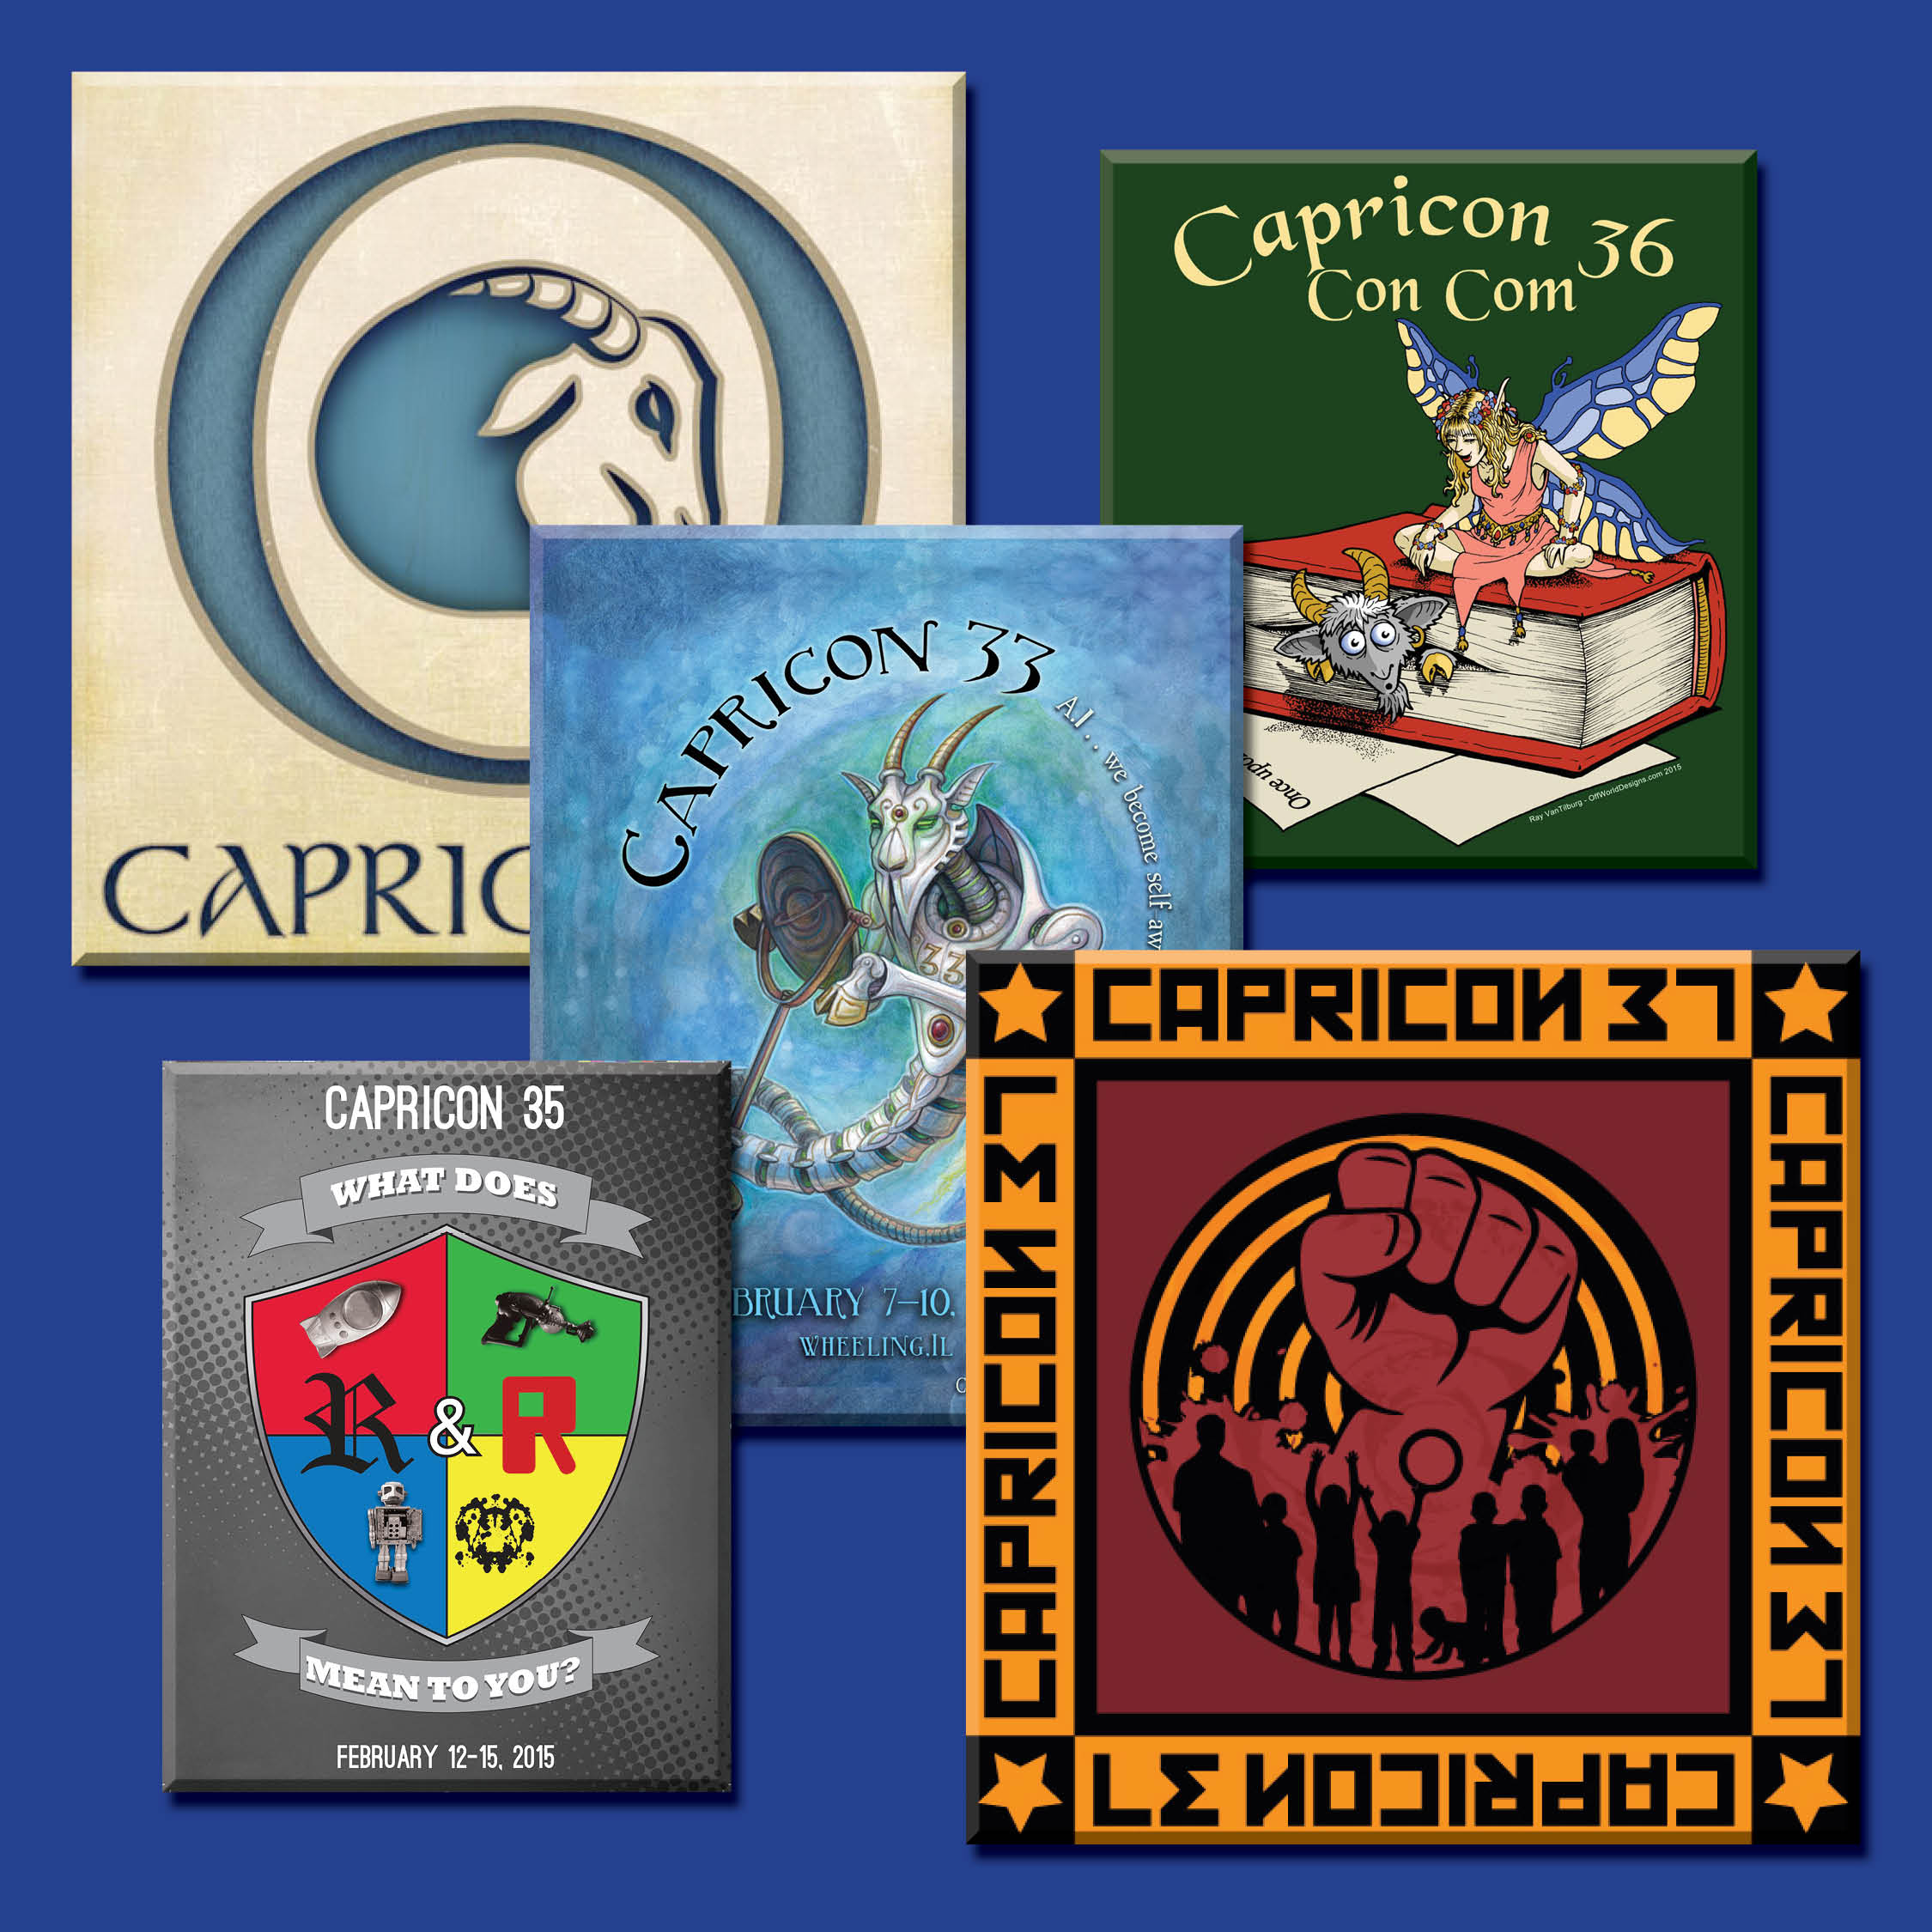 Collage of Capricon images